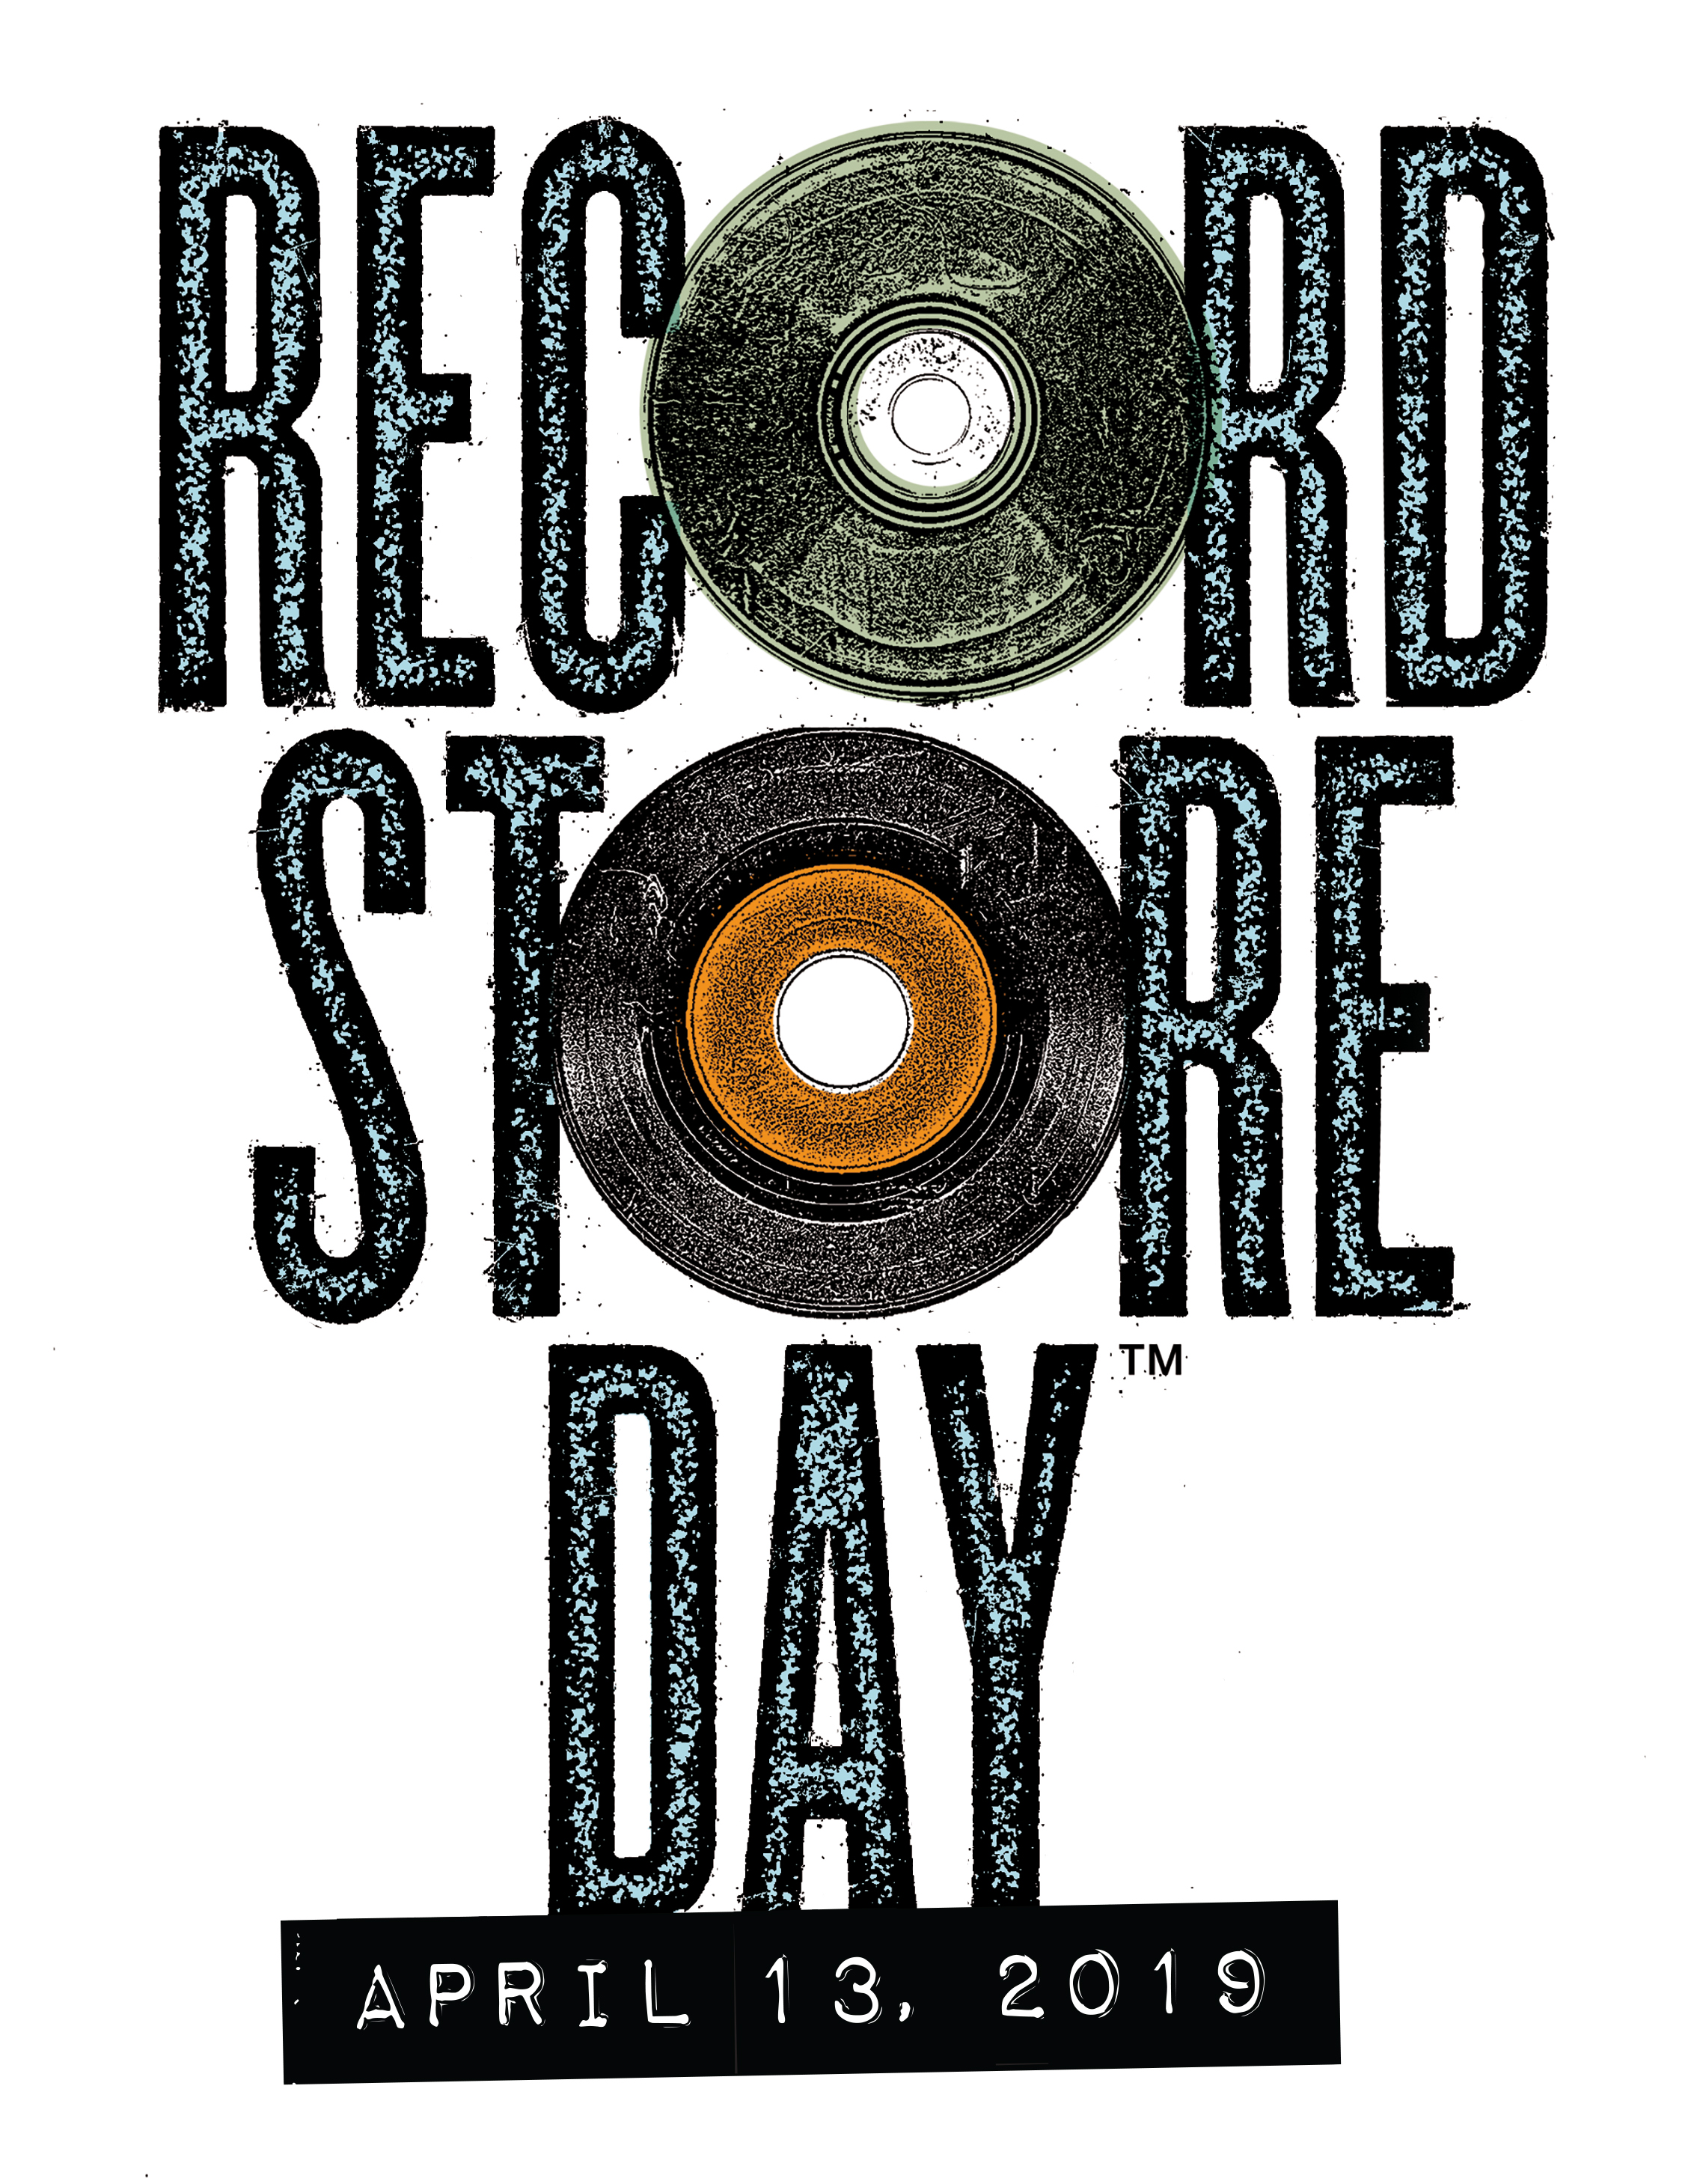 PromotionalEvent   RECORD STORE DAY